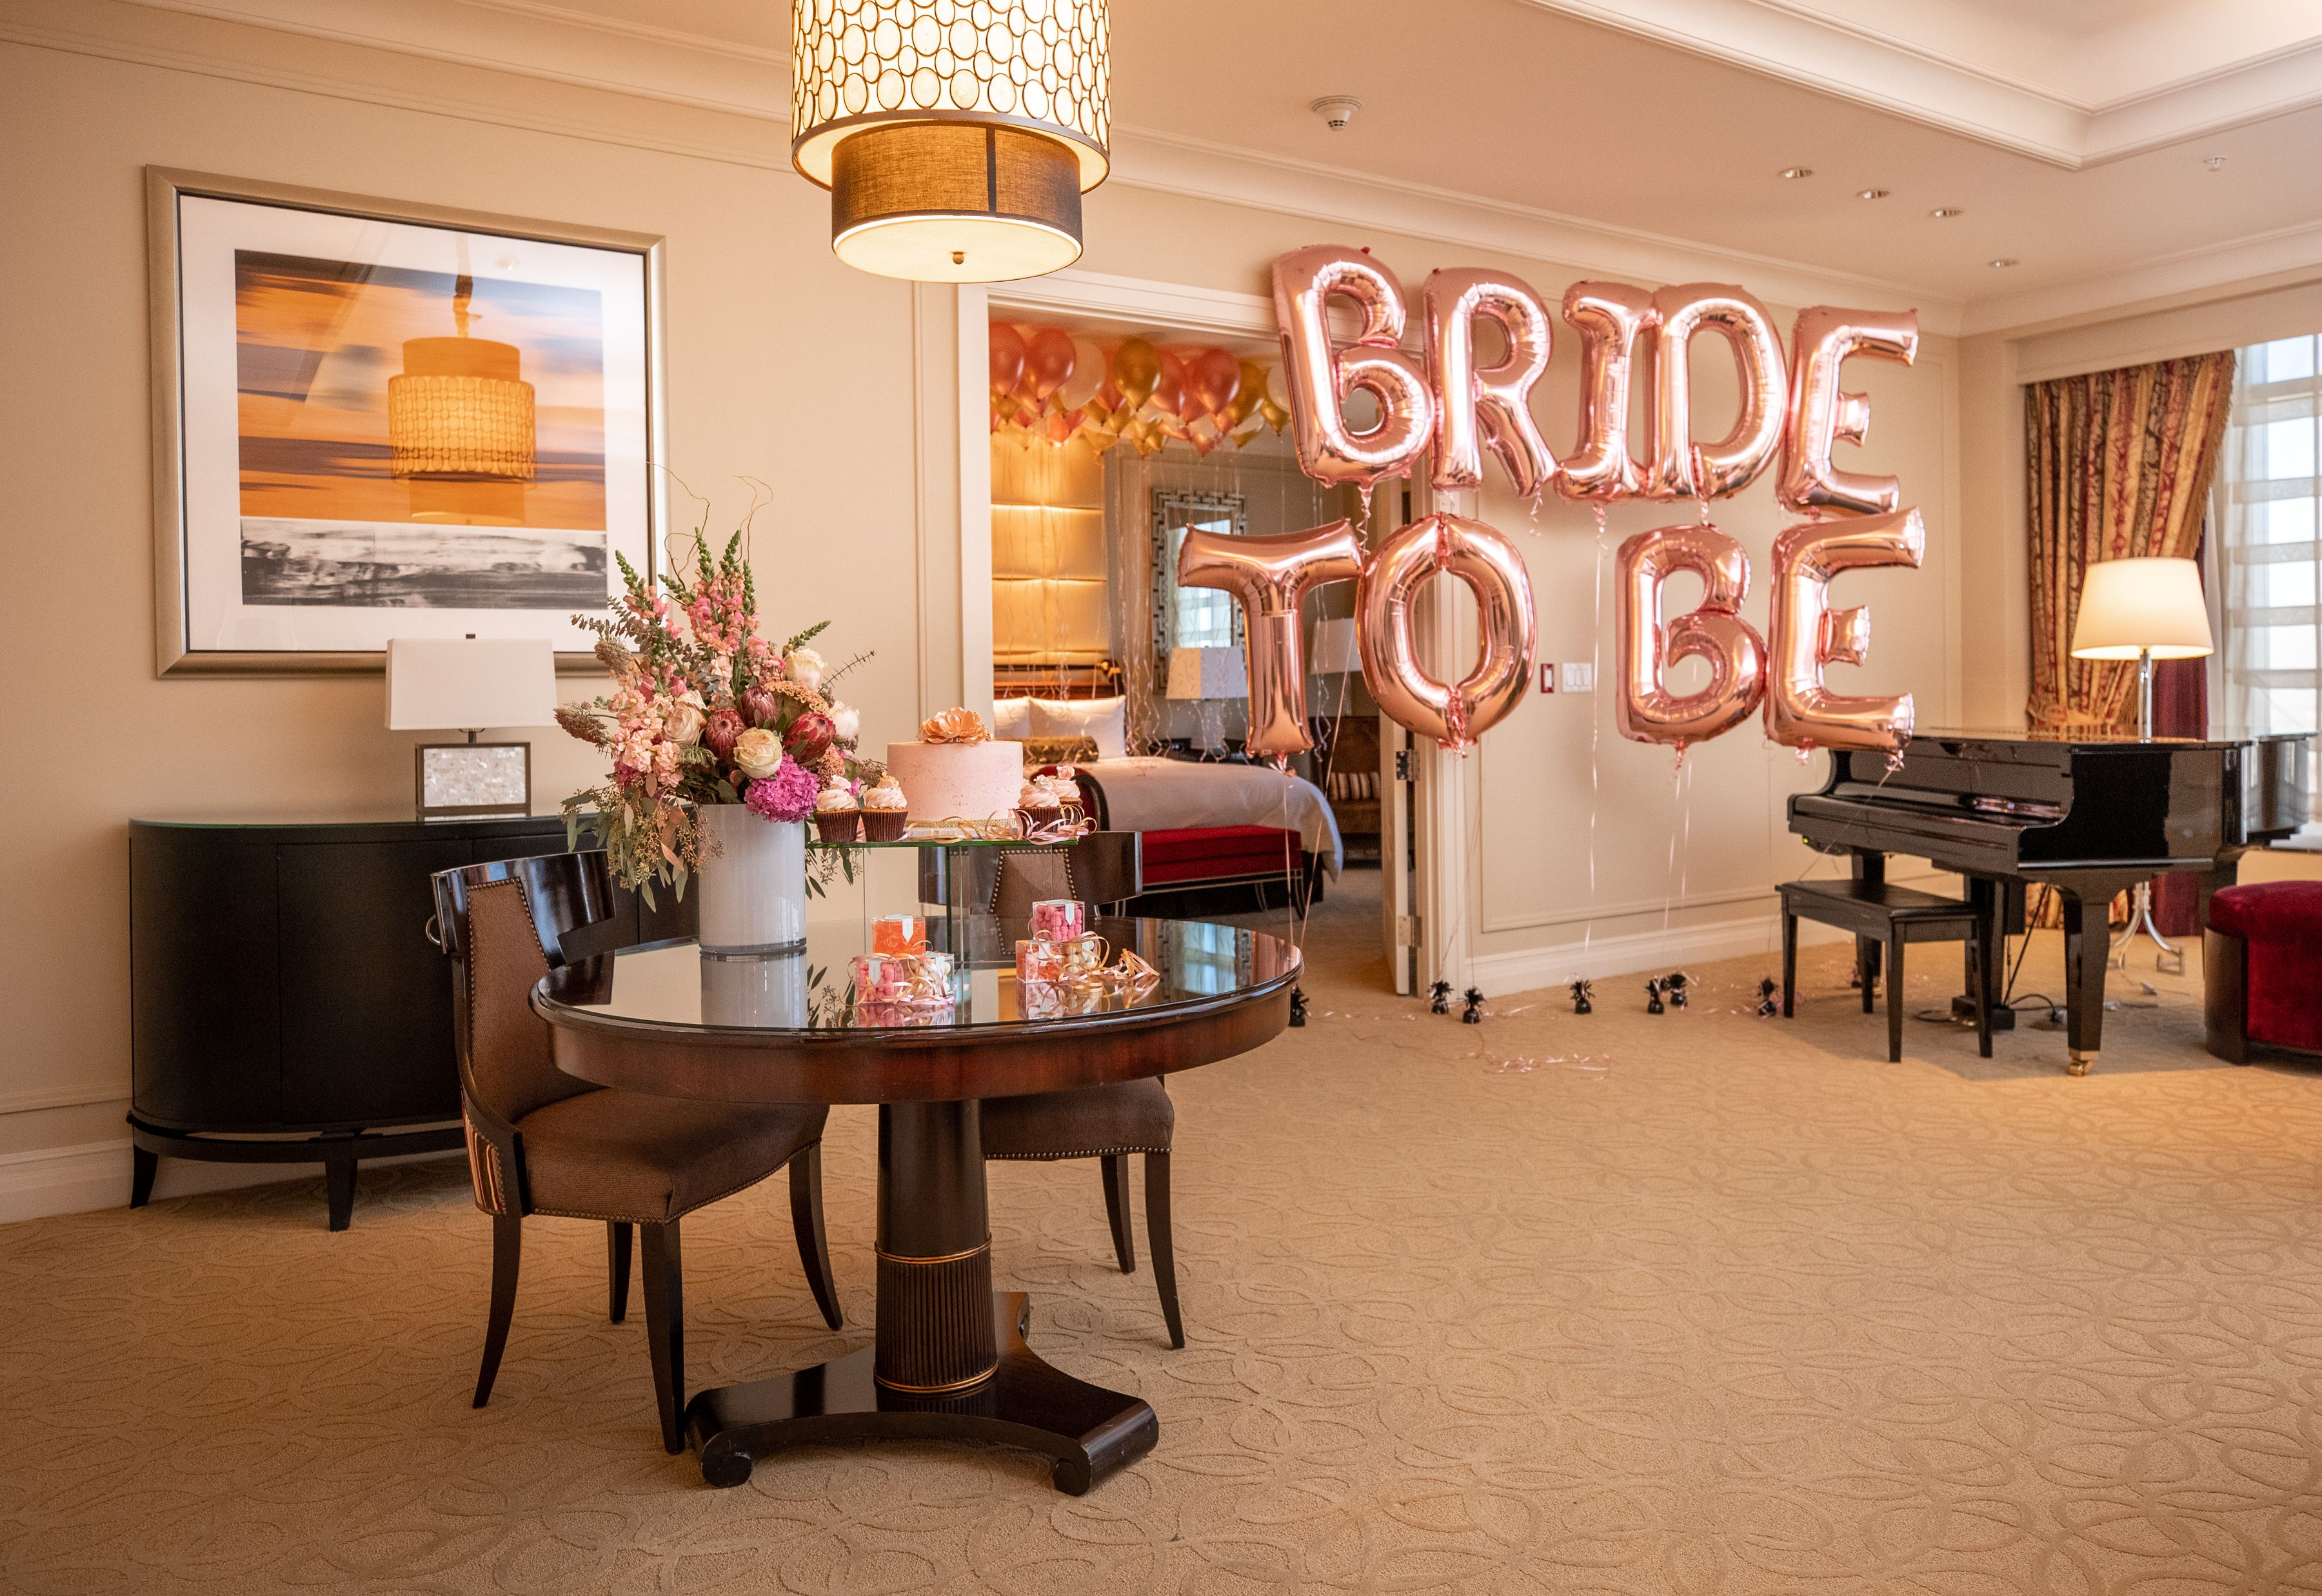 Set The Stage For An Epic Bachelorette Party With In Suite Amenities Bachelorette Bachelorette Weekend Bachelorette Party